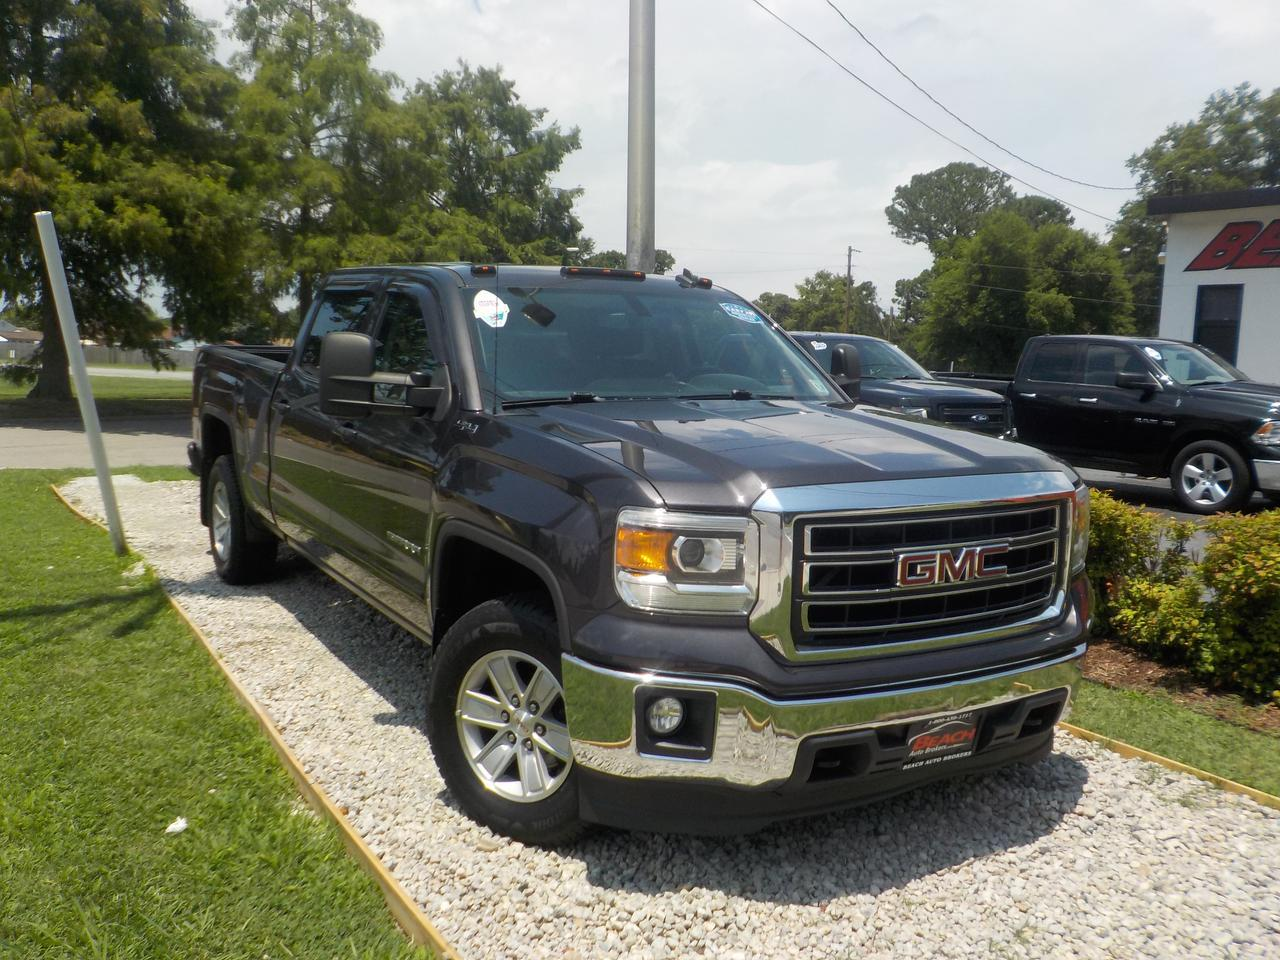 2014 GMC SIERRA 1500 SLE CREW CAB 4X4, WARRANTY, BACKUP CAM, TOW PKG,  ONSTAR, HEATED SEATS, POWER DRIVERS SEAT!